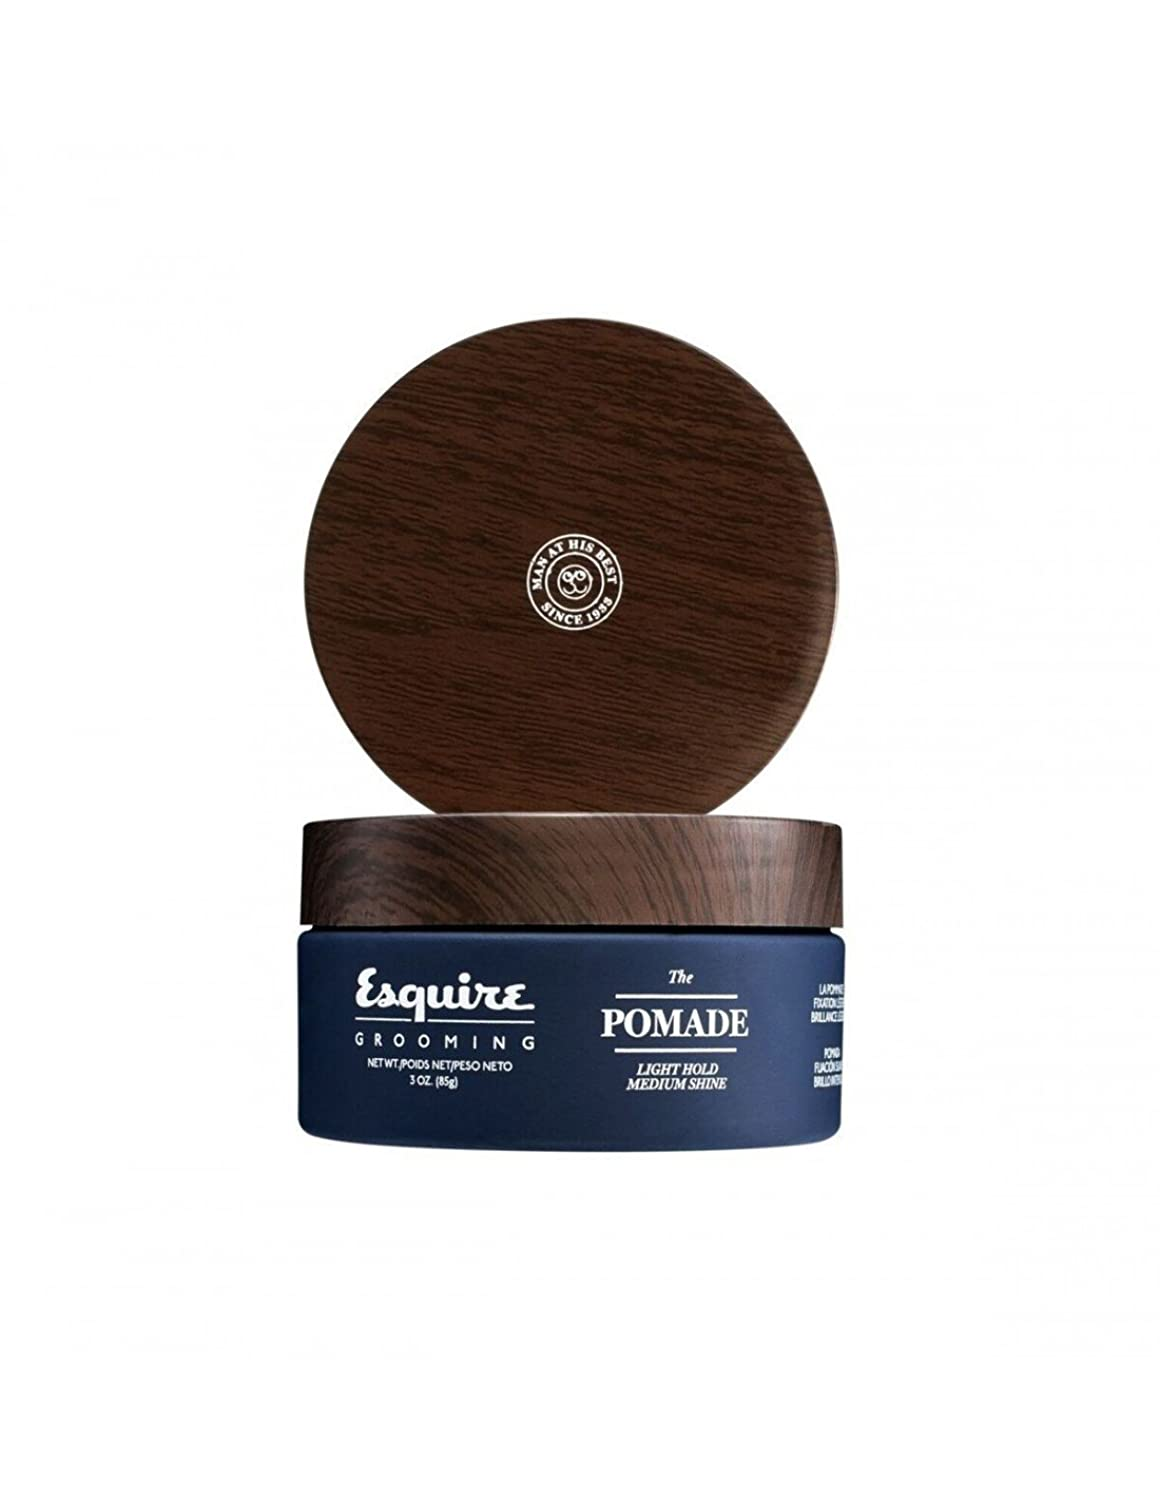 CHI Esquire Grooming The Pomade (Light Hold, Medium Shine) 85g/3oz並行輸入品